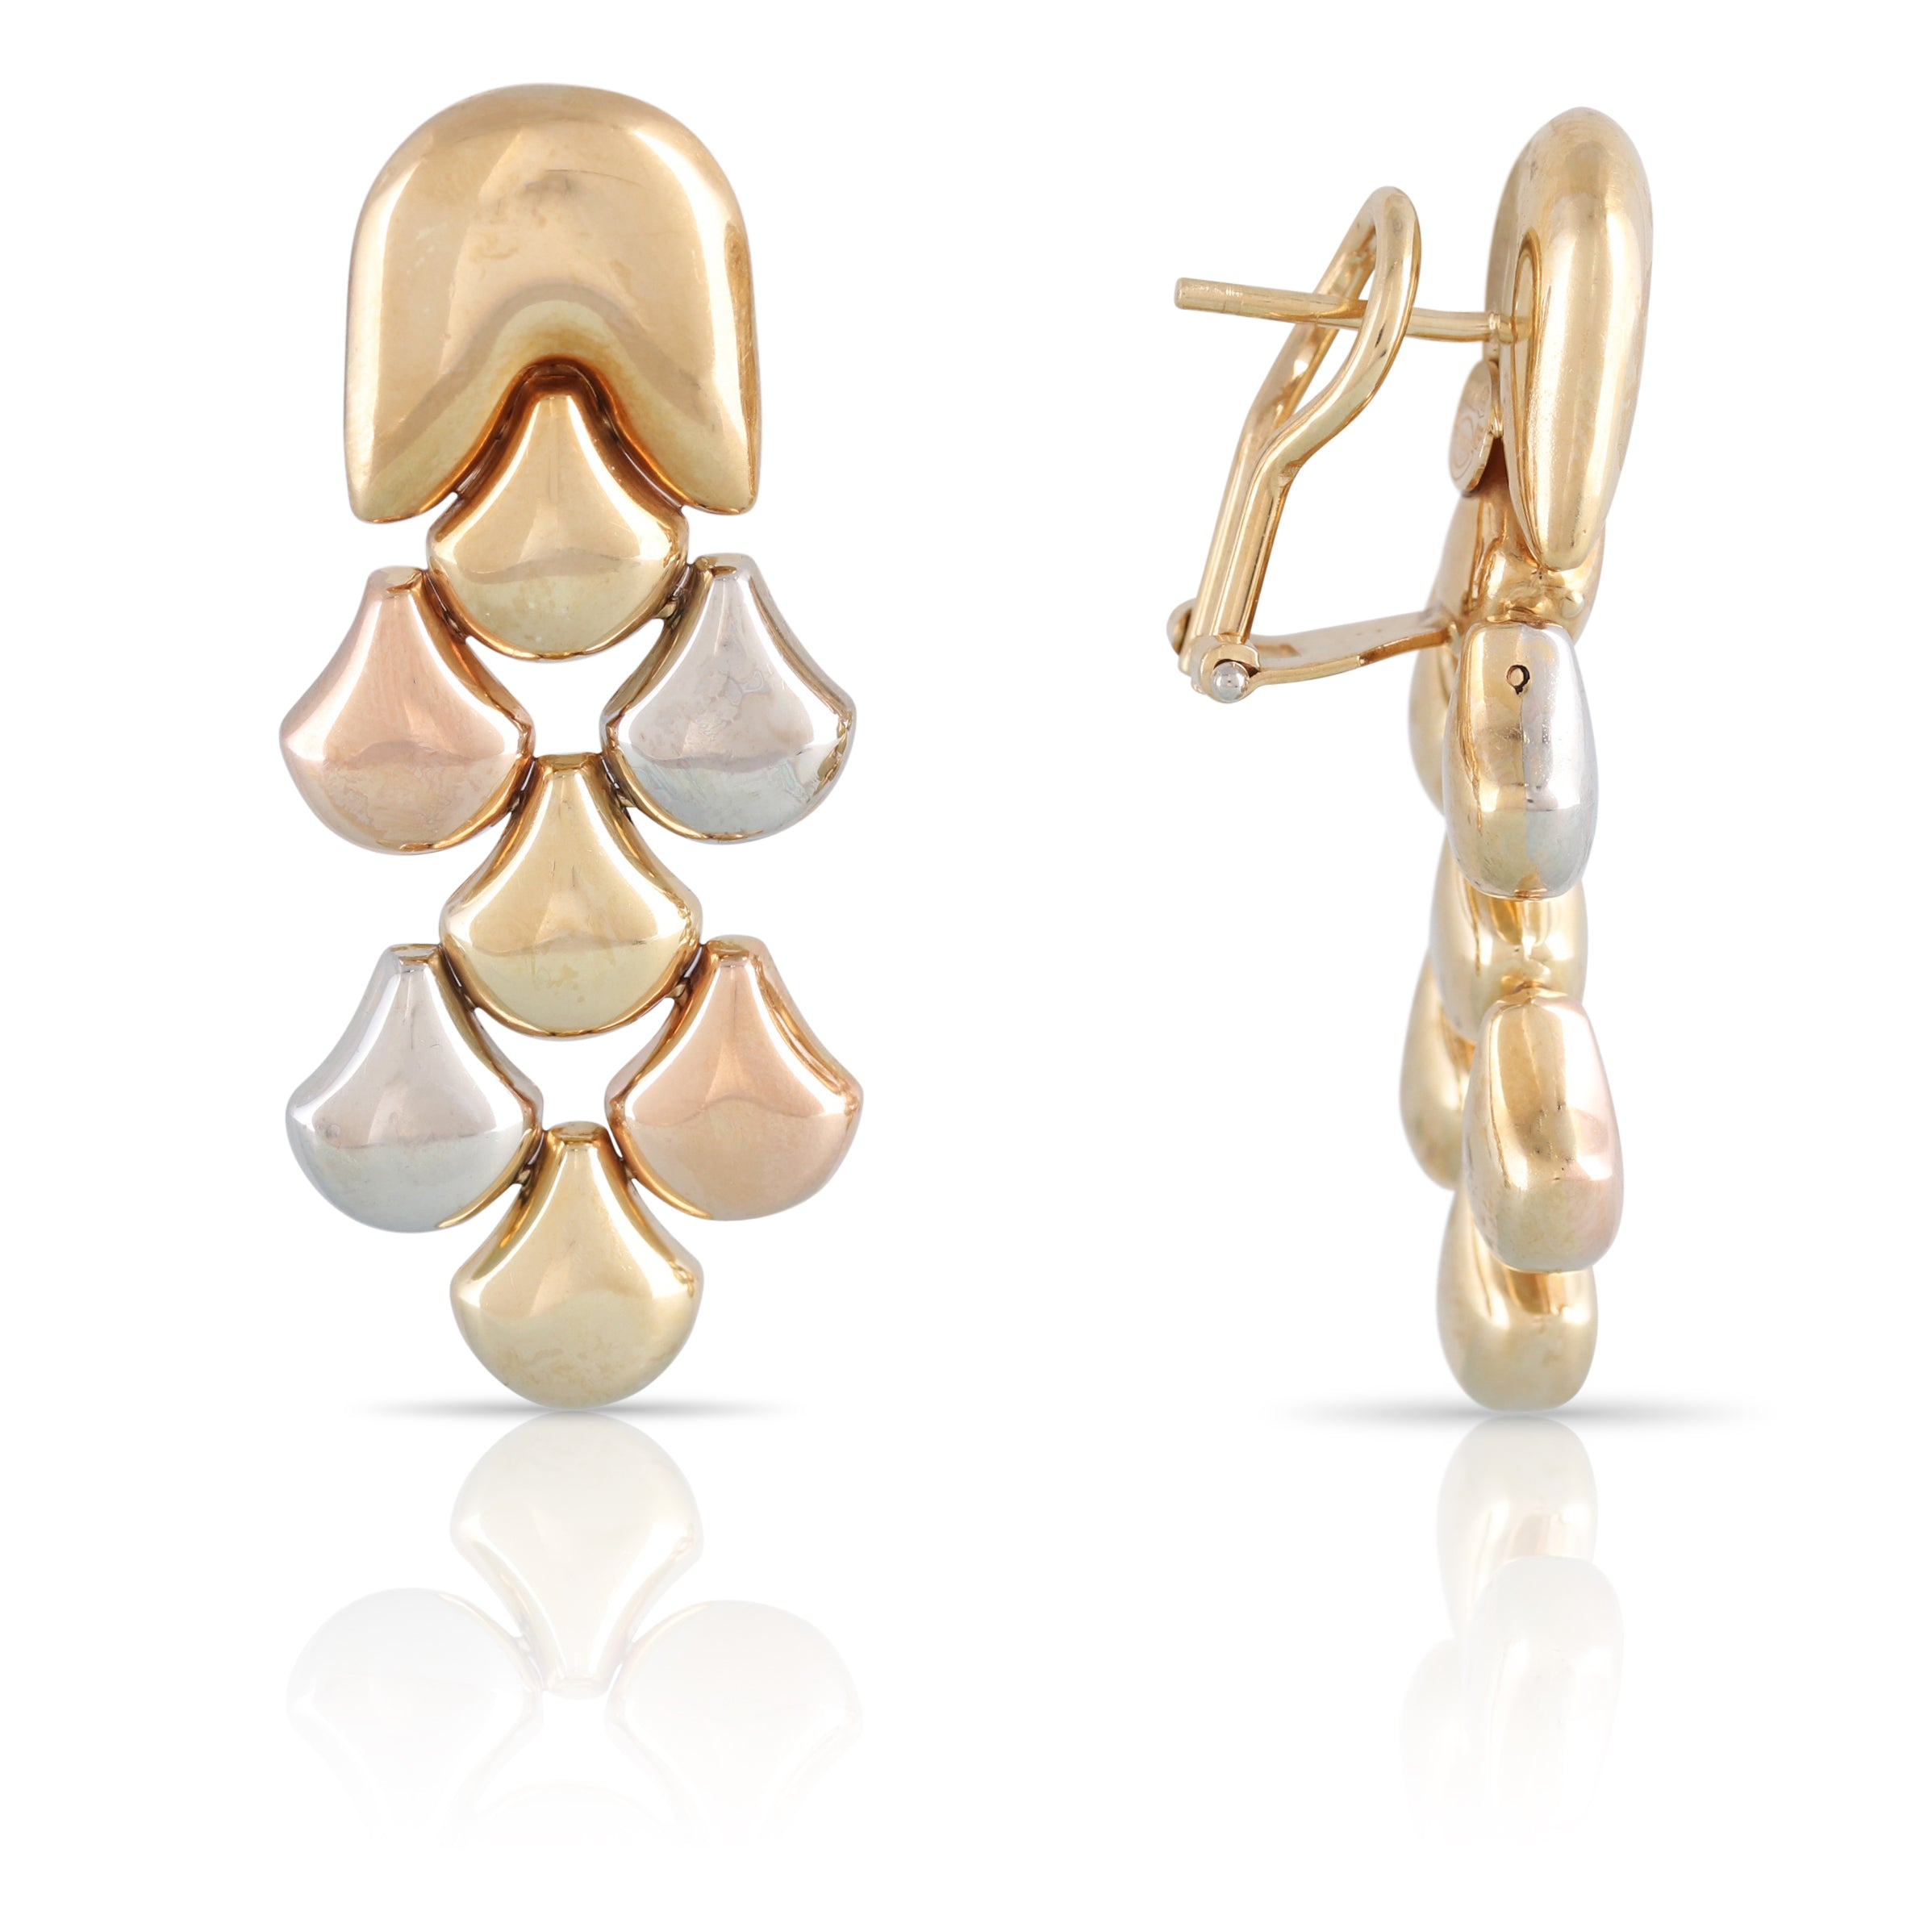 Chimento Tri-Tone Gold Earrings | The Cedric